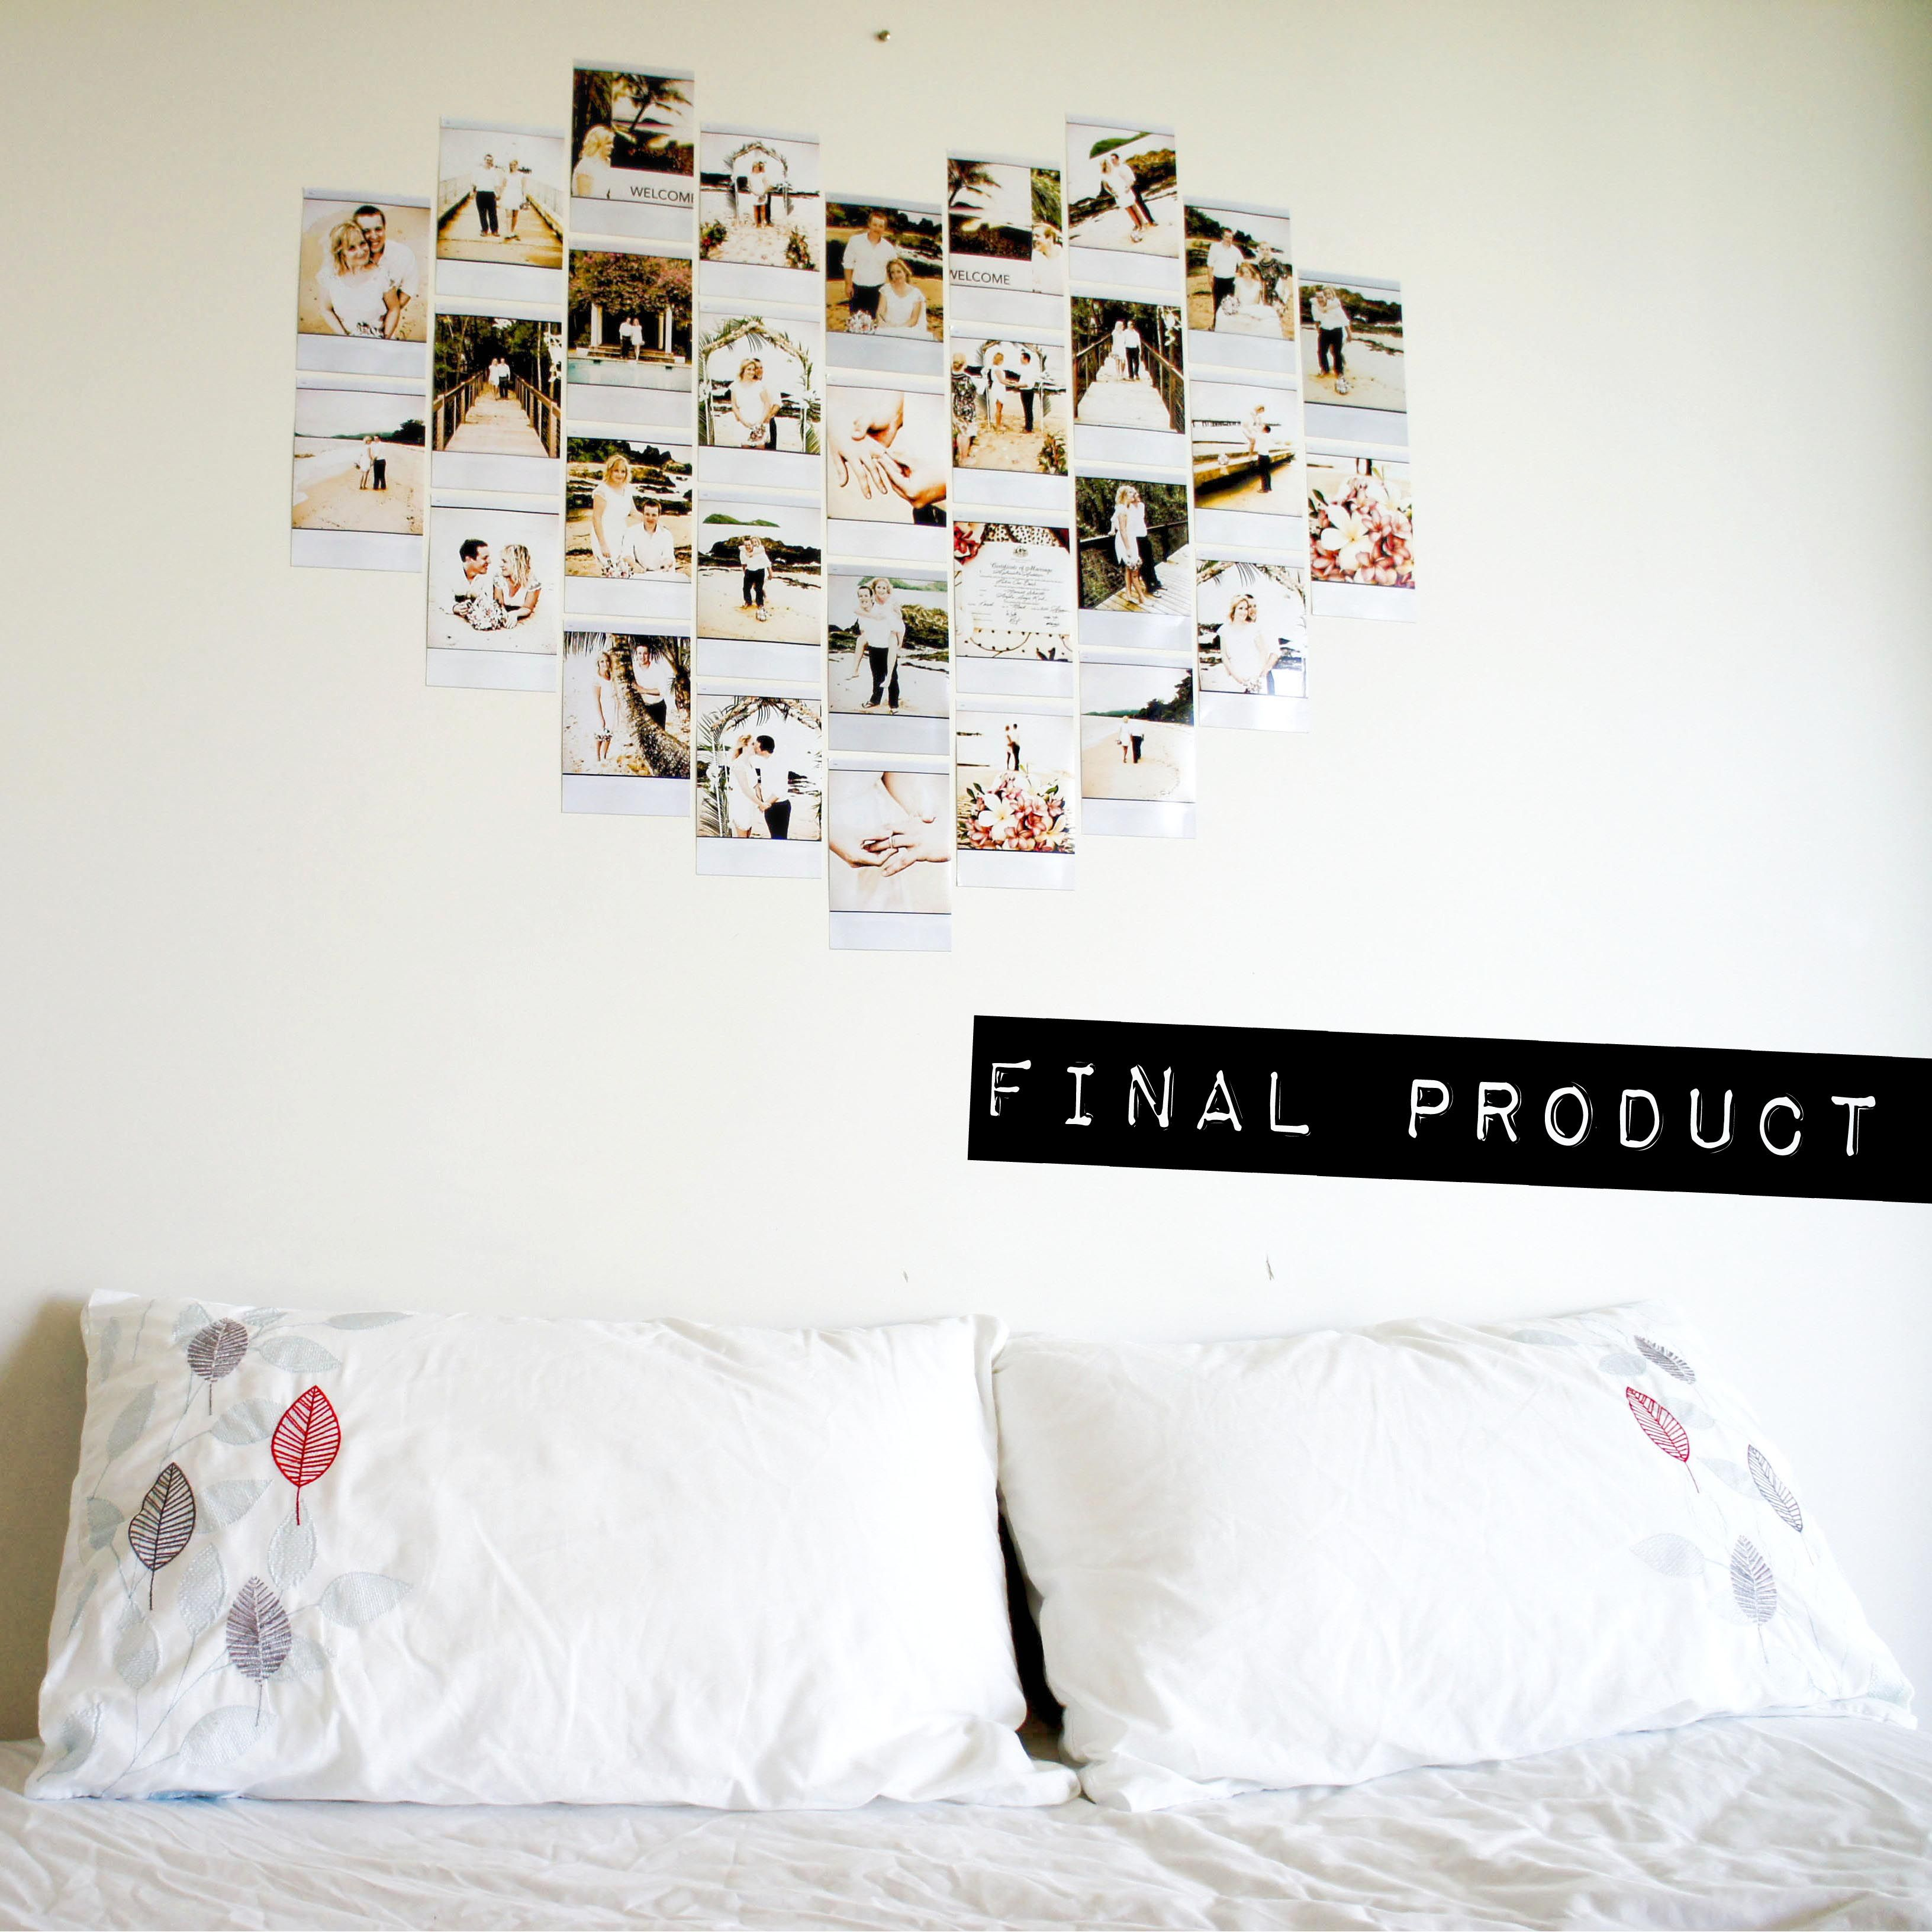 Wall Decor Diy With Images Diy Wall Decor For Bedroom Wall Decor Bedroom Diy Wall Decor